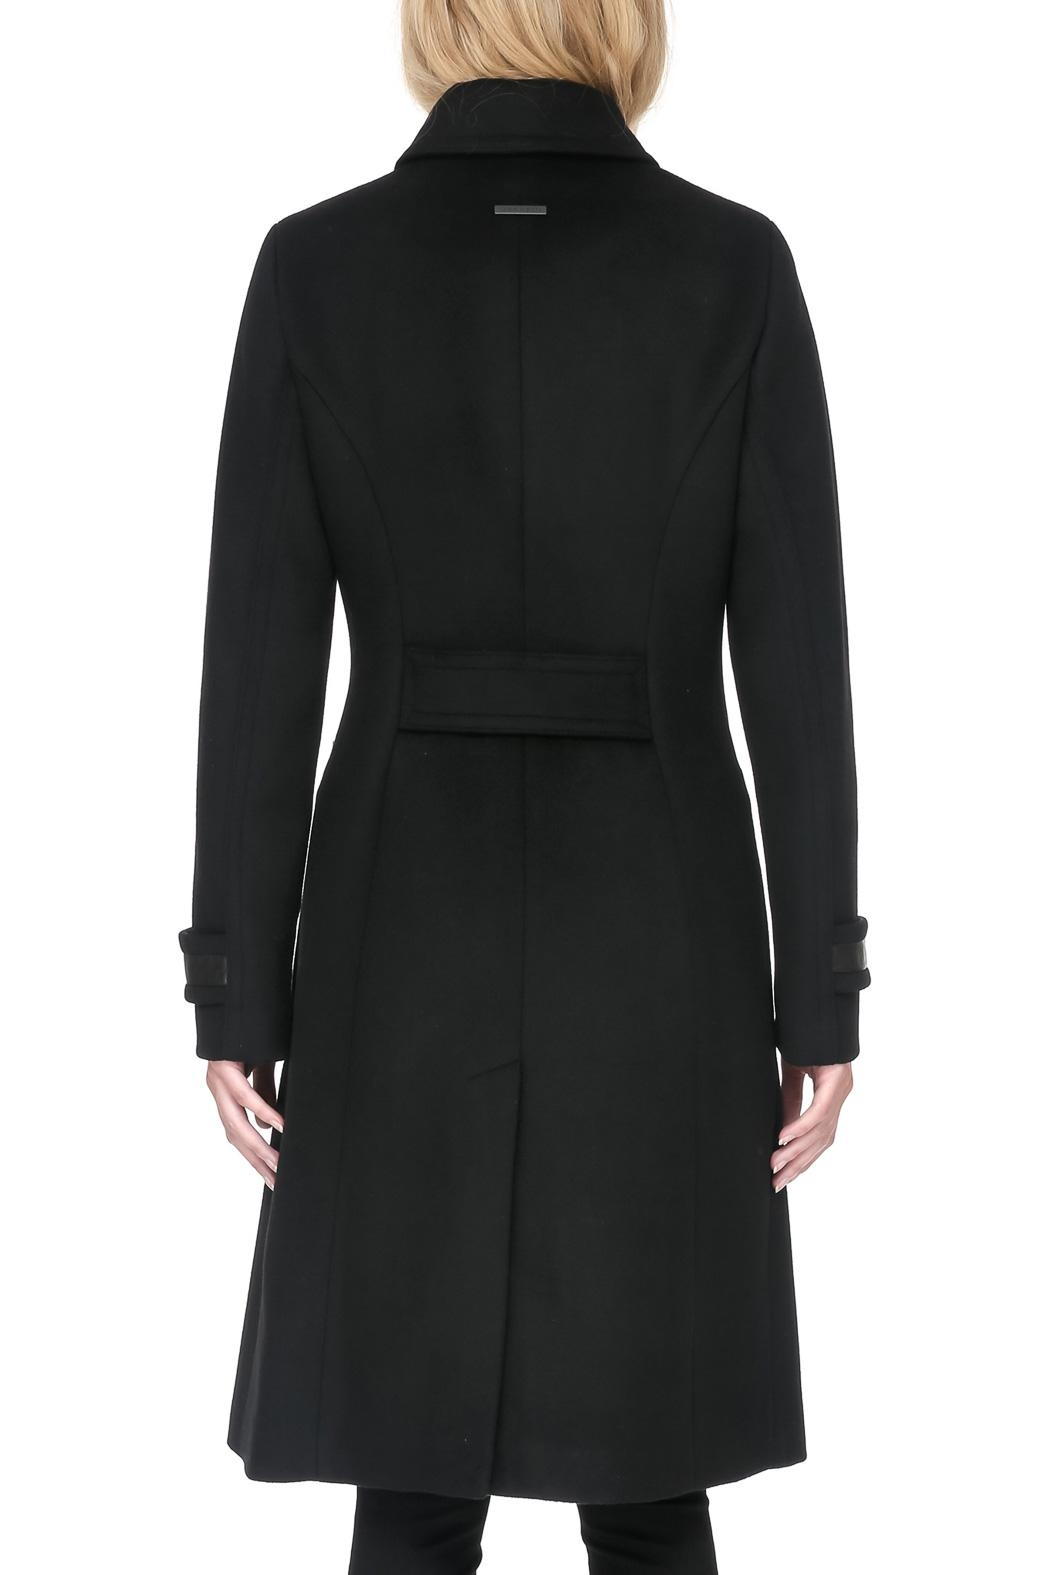 Soia & Kyo Julianna Wool Coat - Back Cropped Image